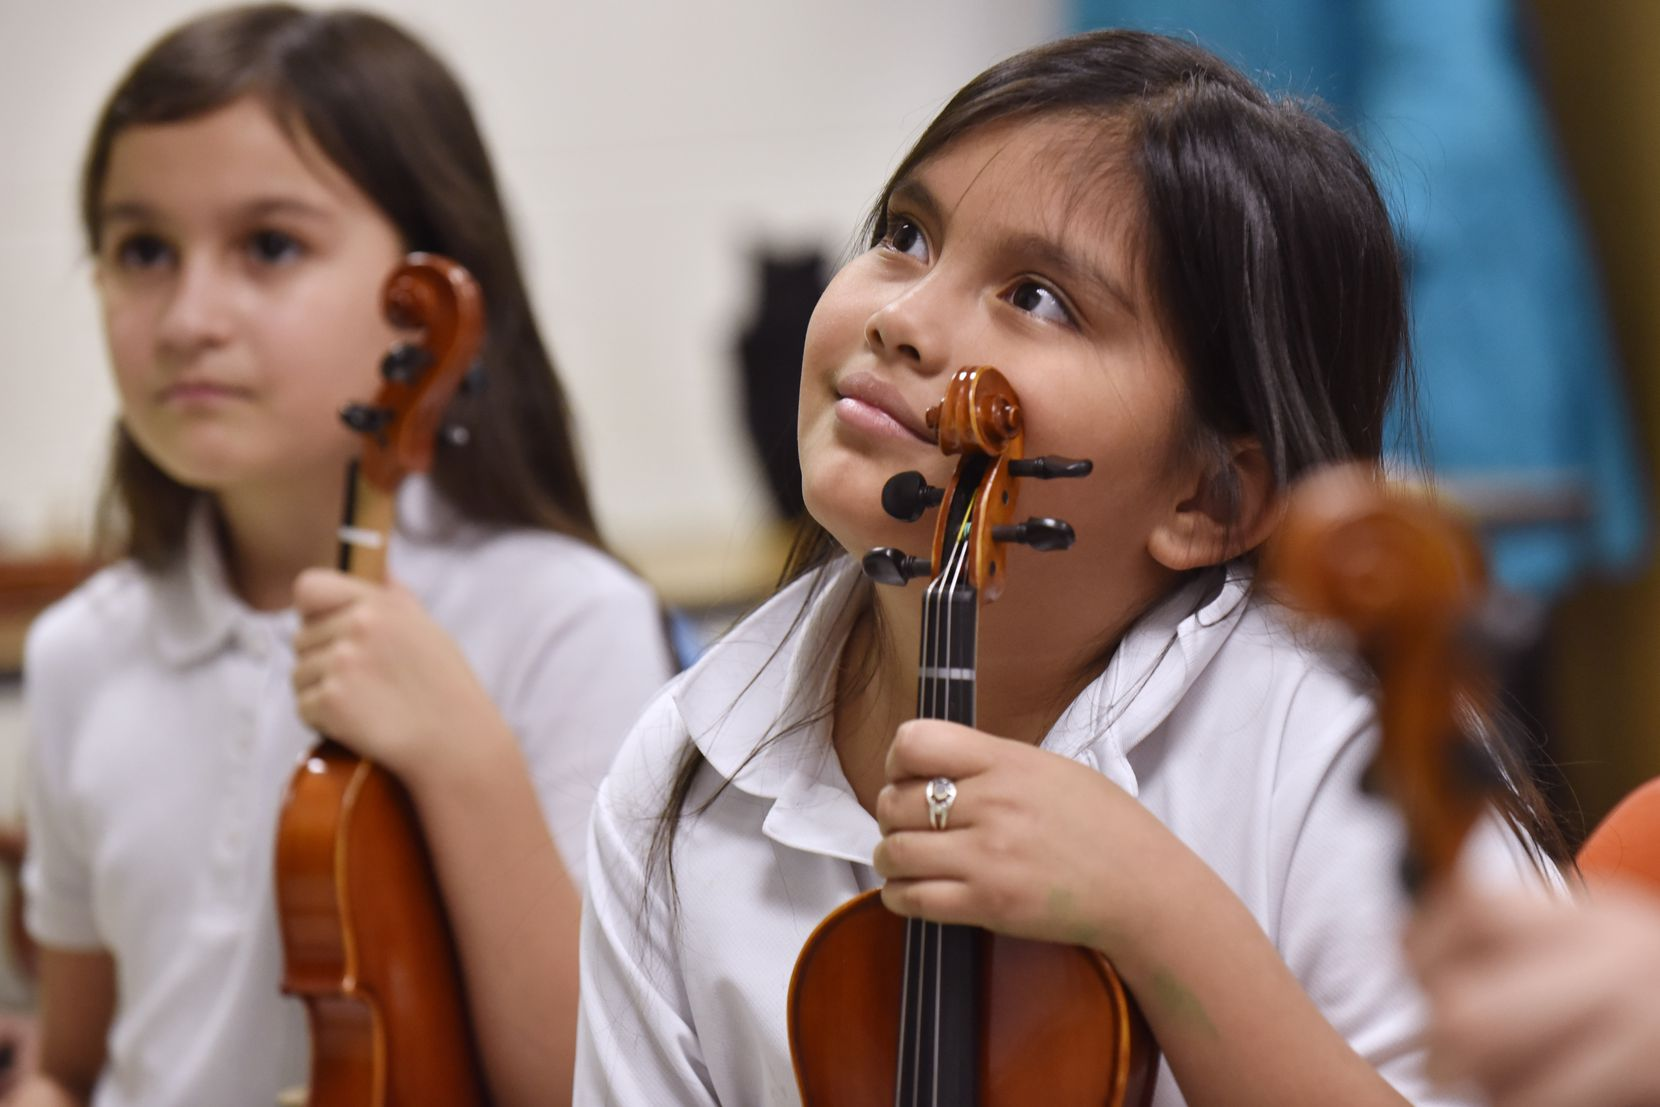 Mayte Mendoza, center, listens to instructions from teacher Nicole Melki. The 8-year-old says that the performances she and her classmates get to do is one of her favorite parts of violin lessons.